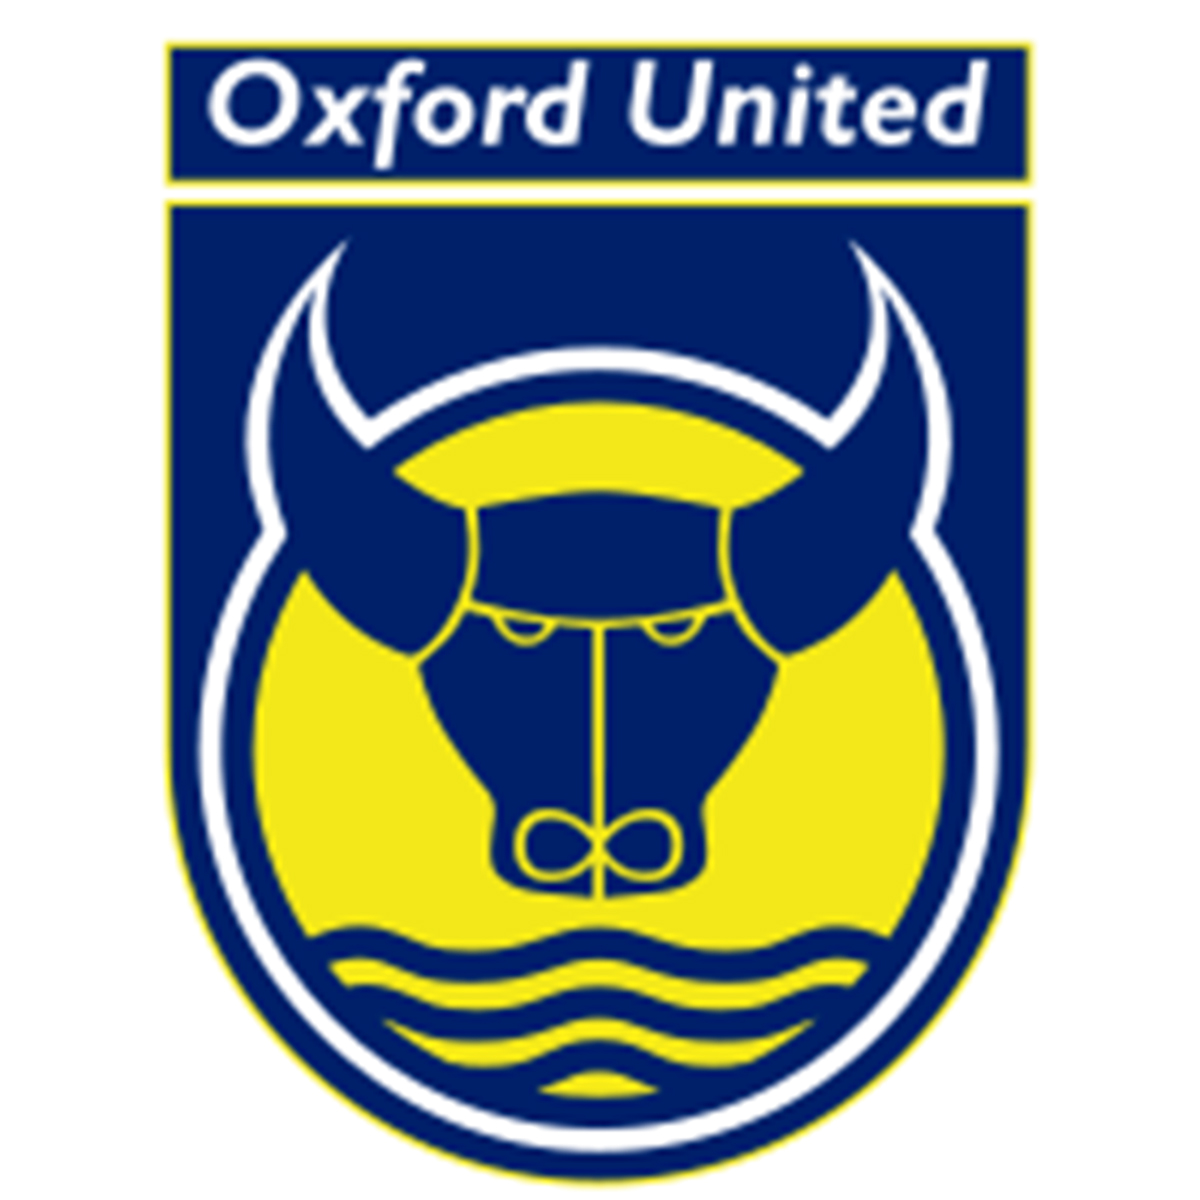 Oxford Utd 0 Portsmouth 0